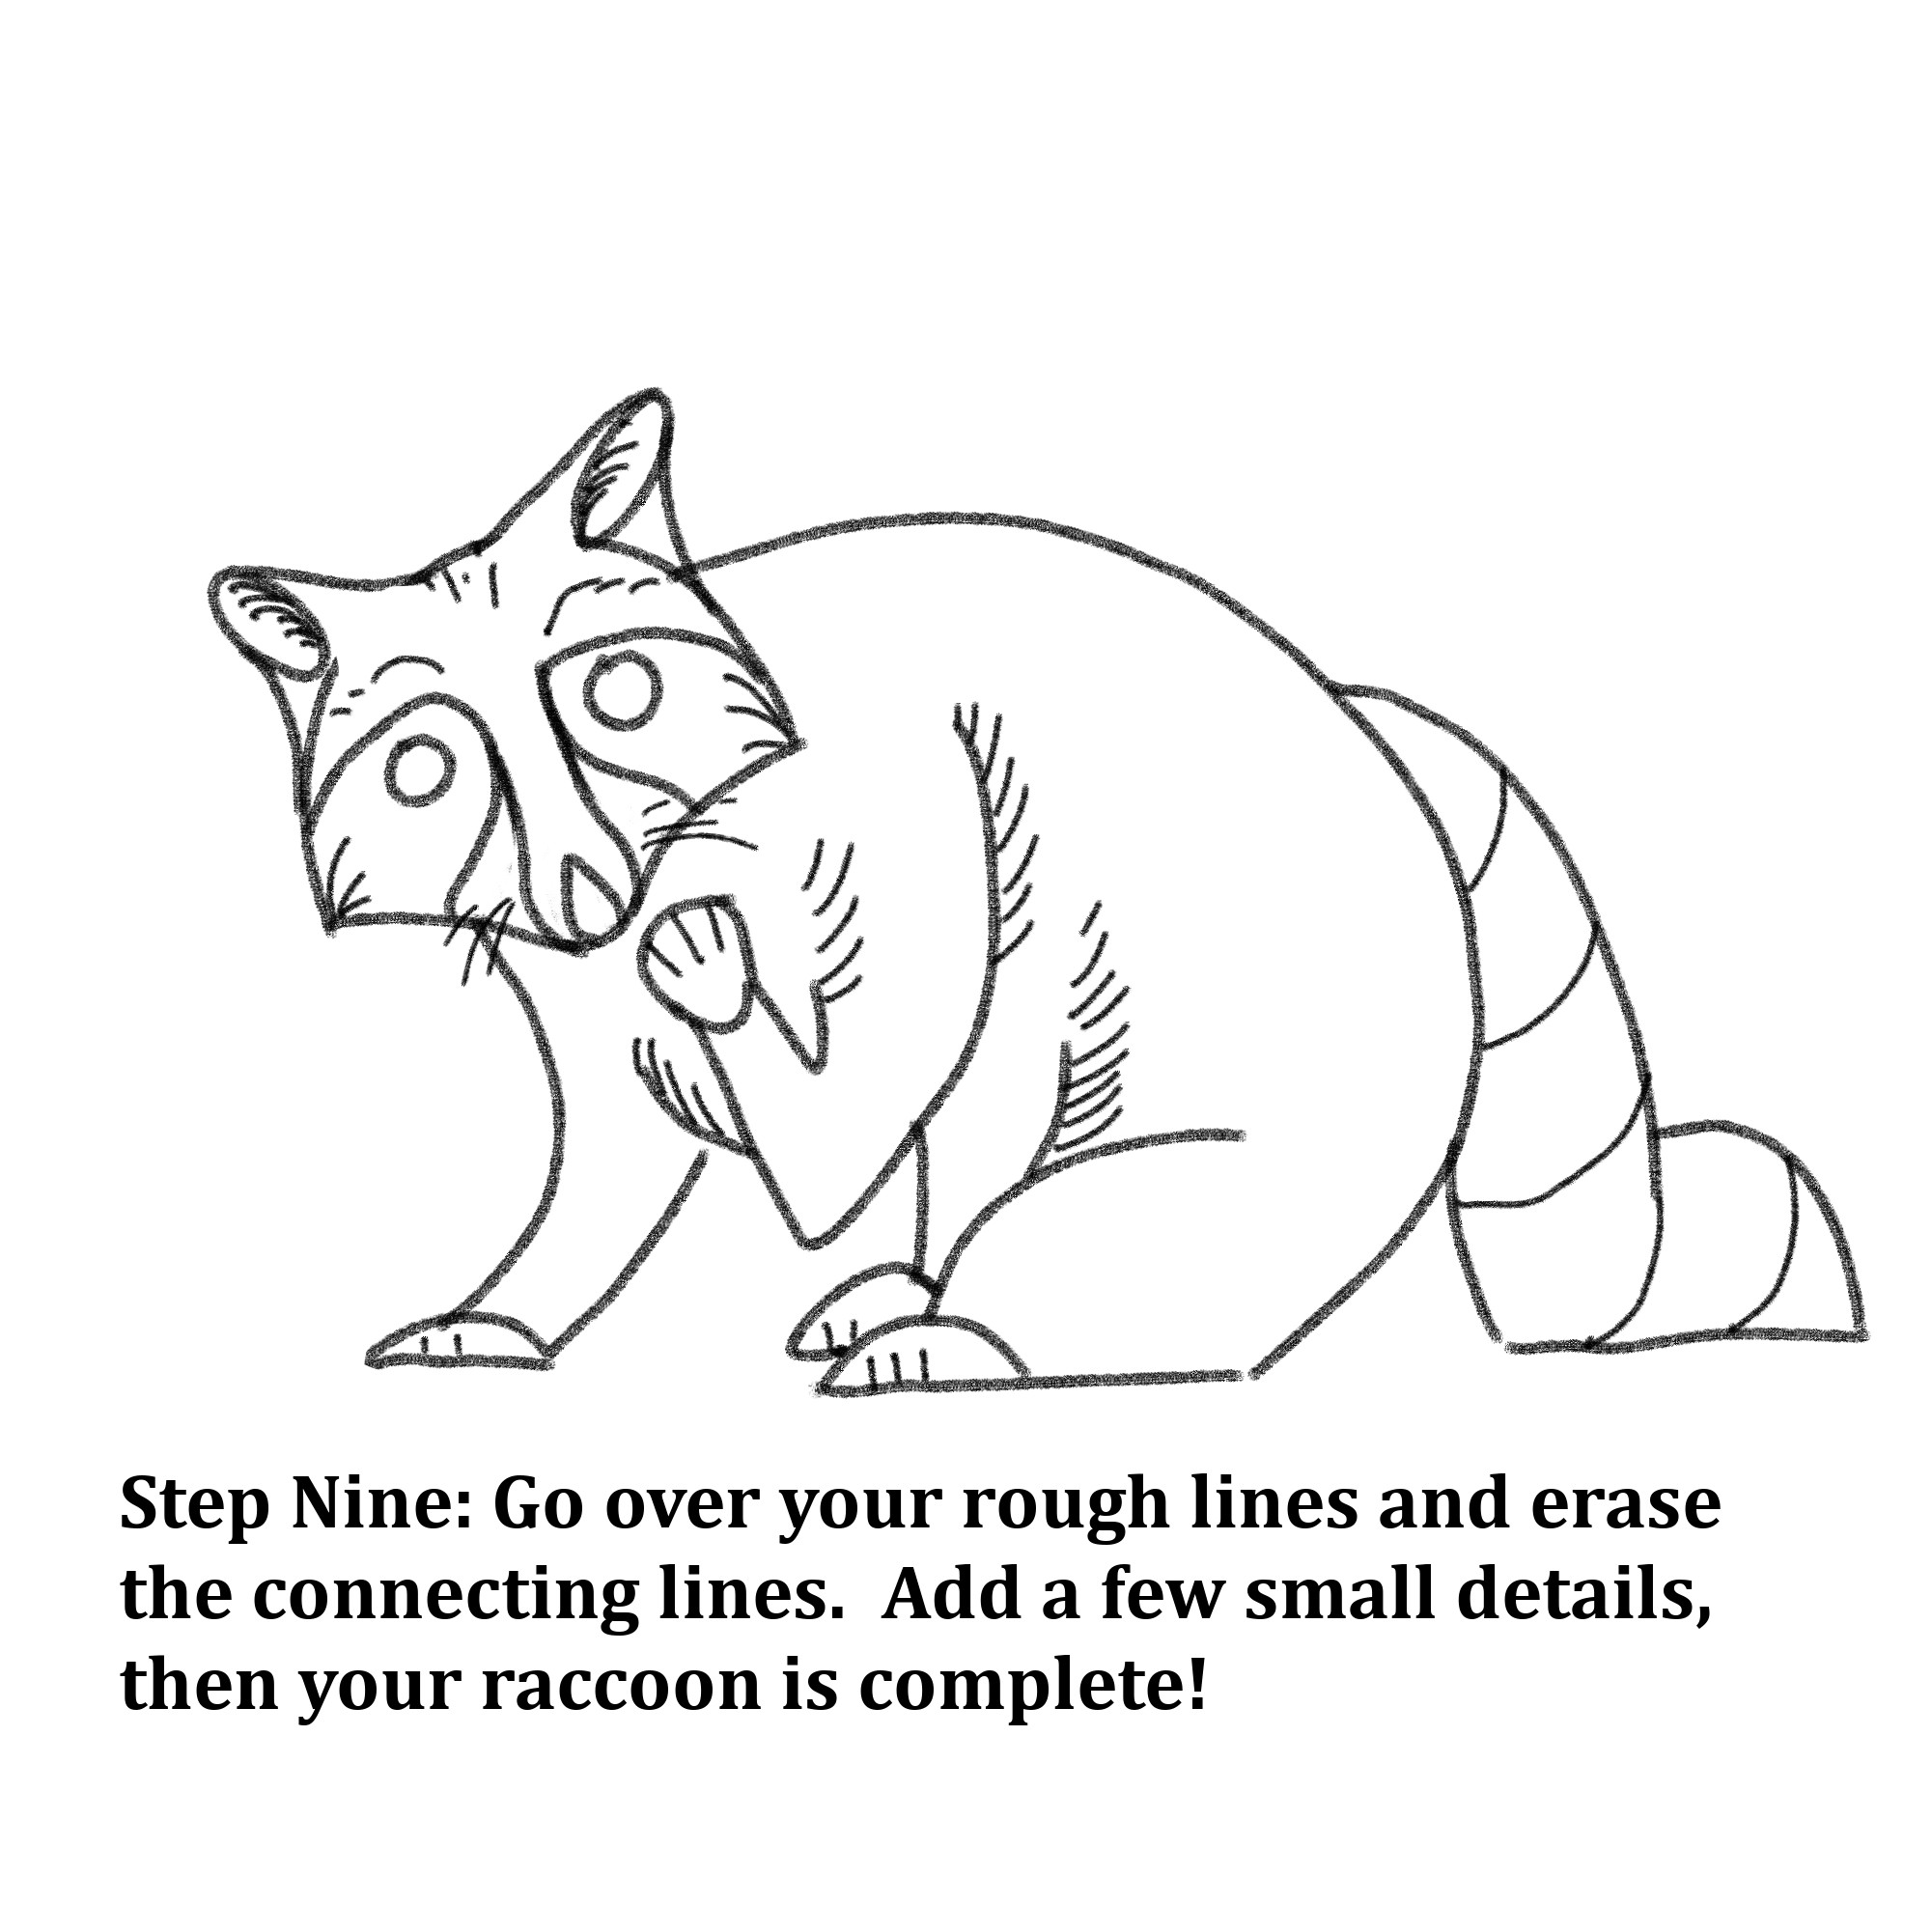 "Drawn shapes with text instructions: ""Step Nine: Go over your rough lines and erase the connecting lines. Add a few small details, then your raccoon is complete!"""